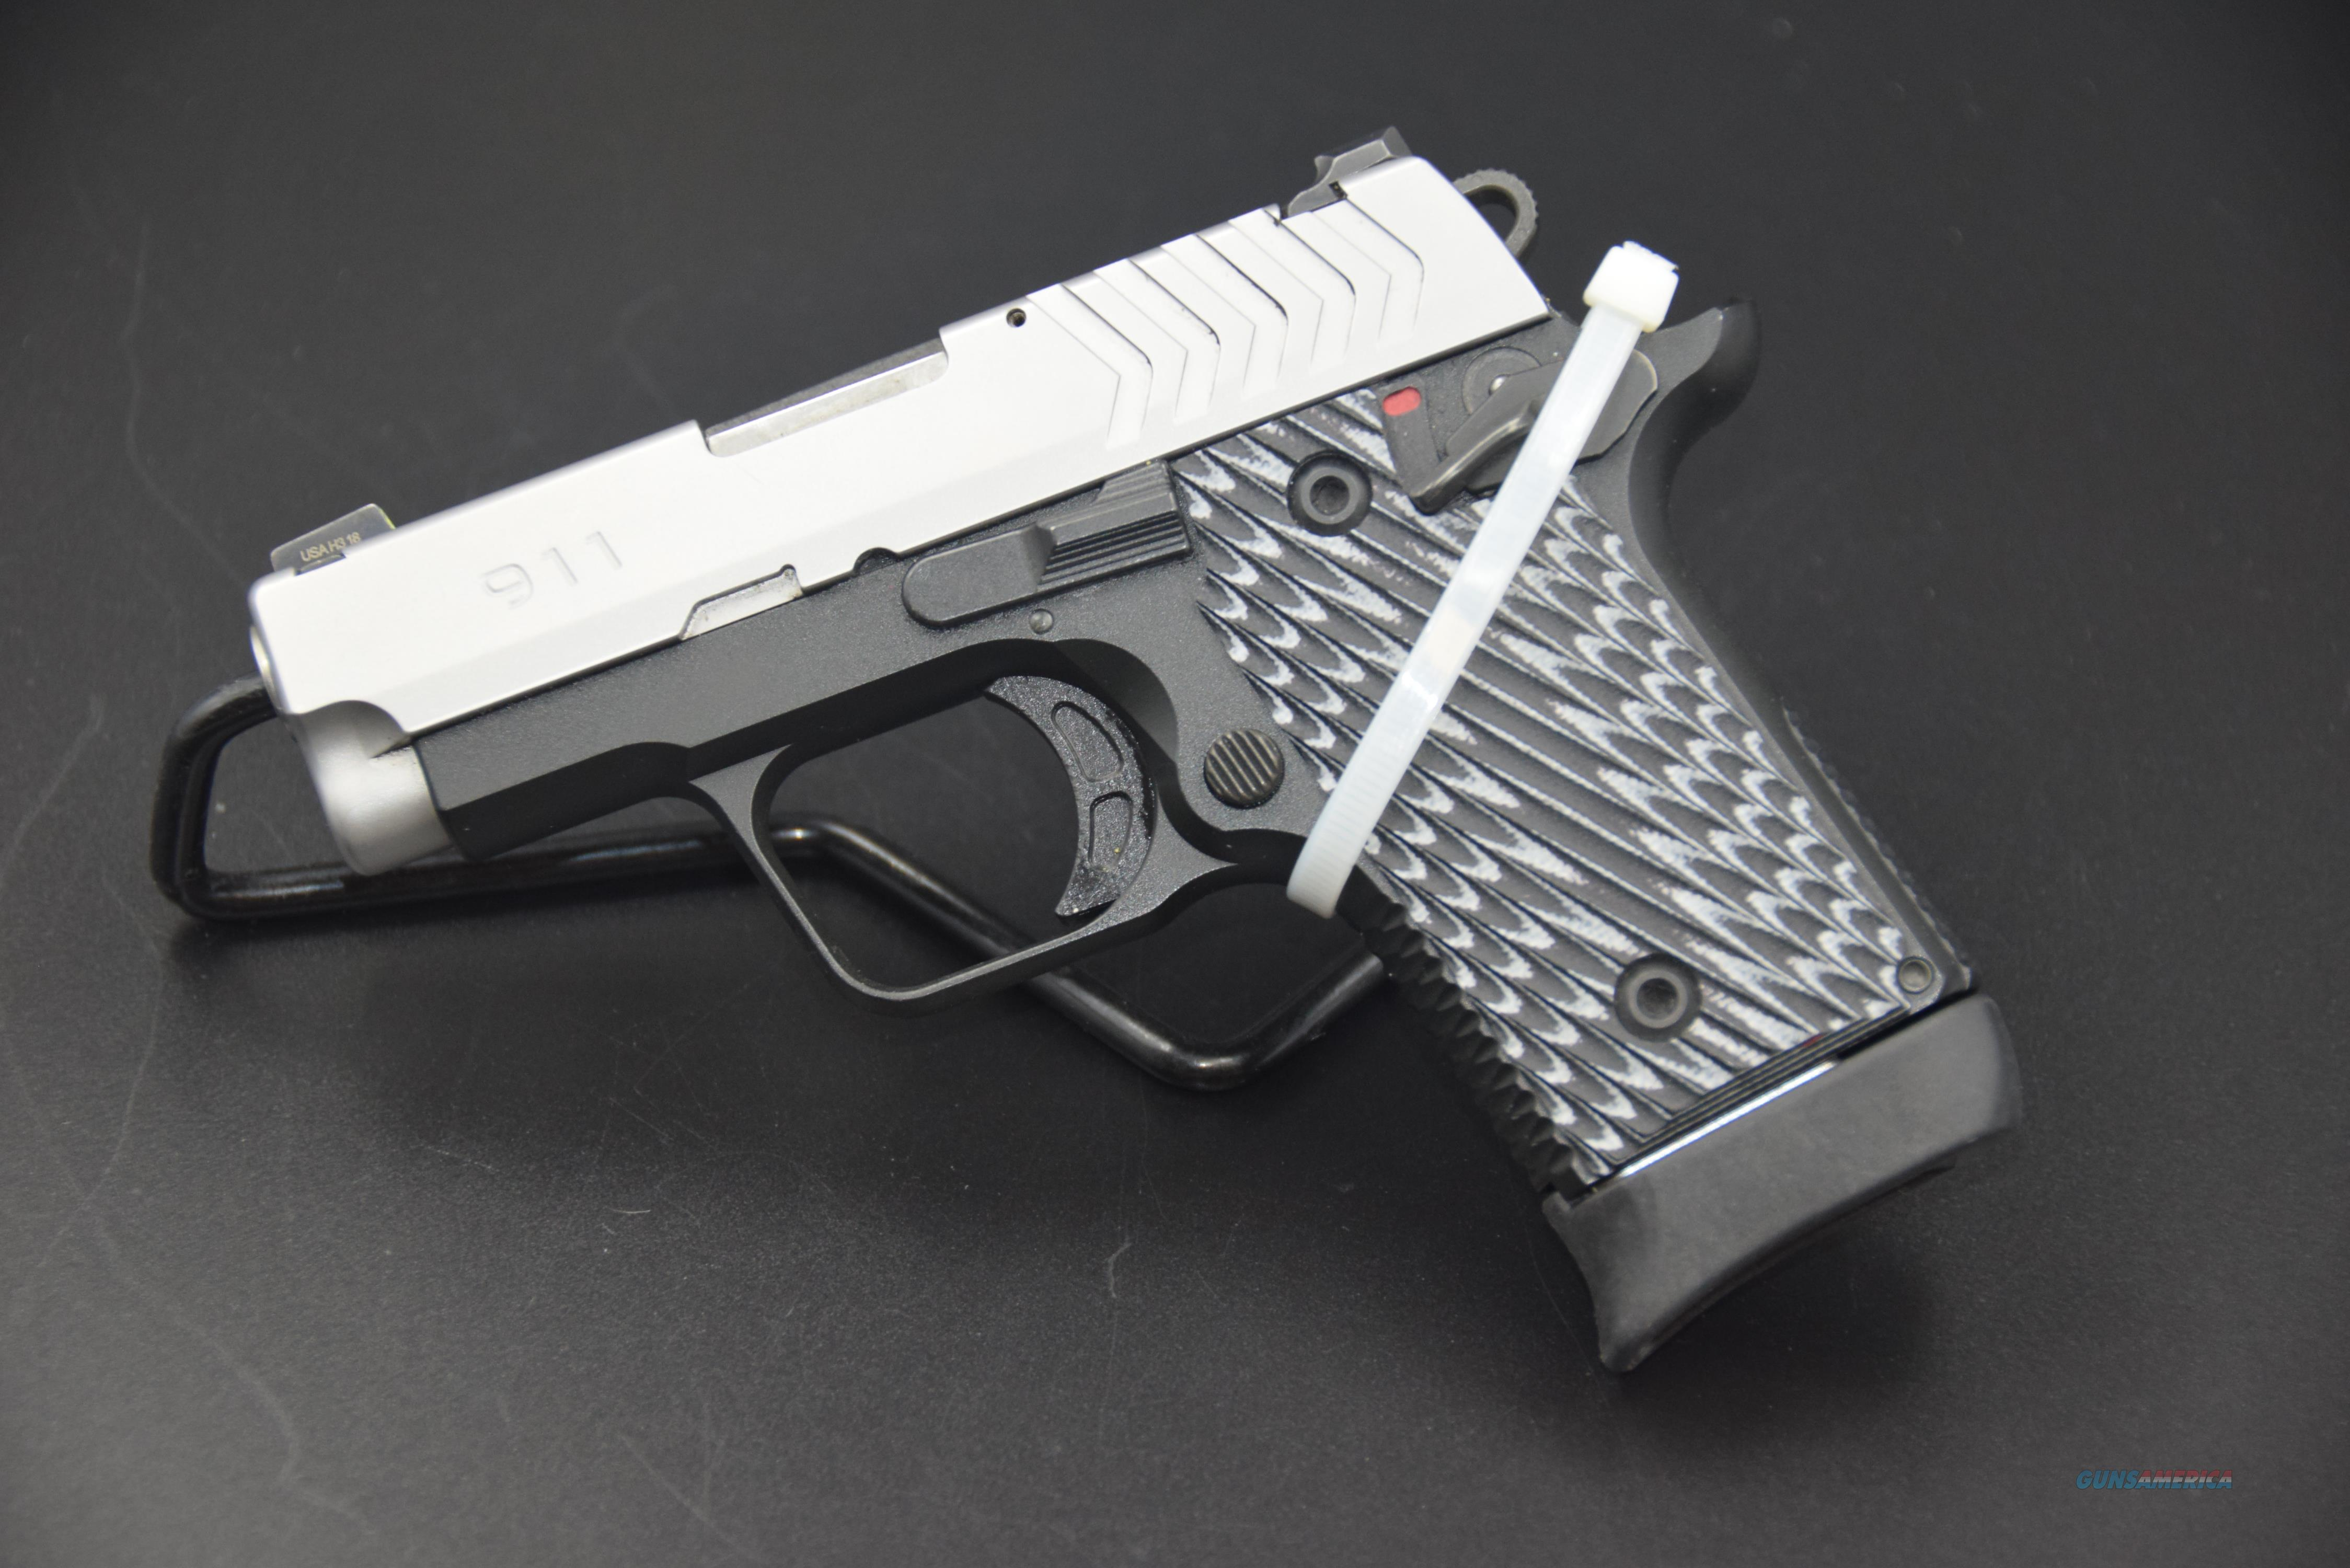 SPRINGFIELD ARMORY MODEL 911 PISTOL IN .380 ACP, TWO-TONE WITH G-10 GRIPS -- REDUCED!!  Guns > Pistols > Springfield Armory Pistols > 911